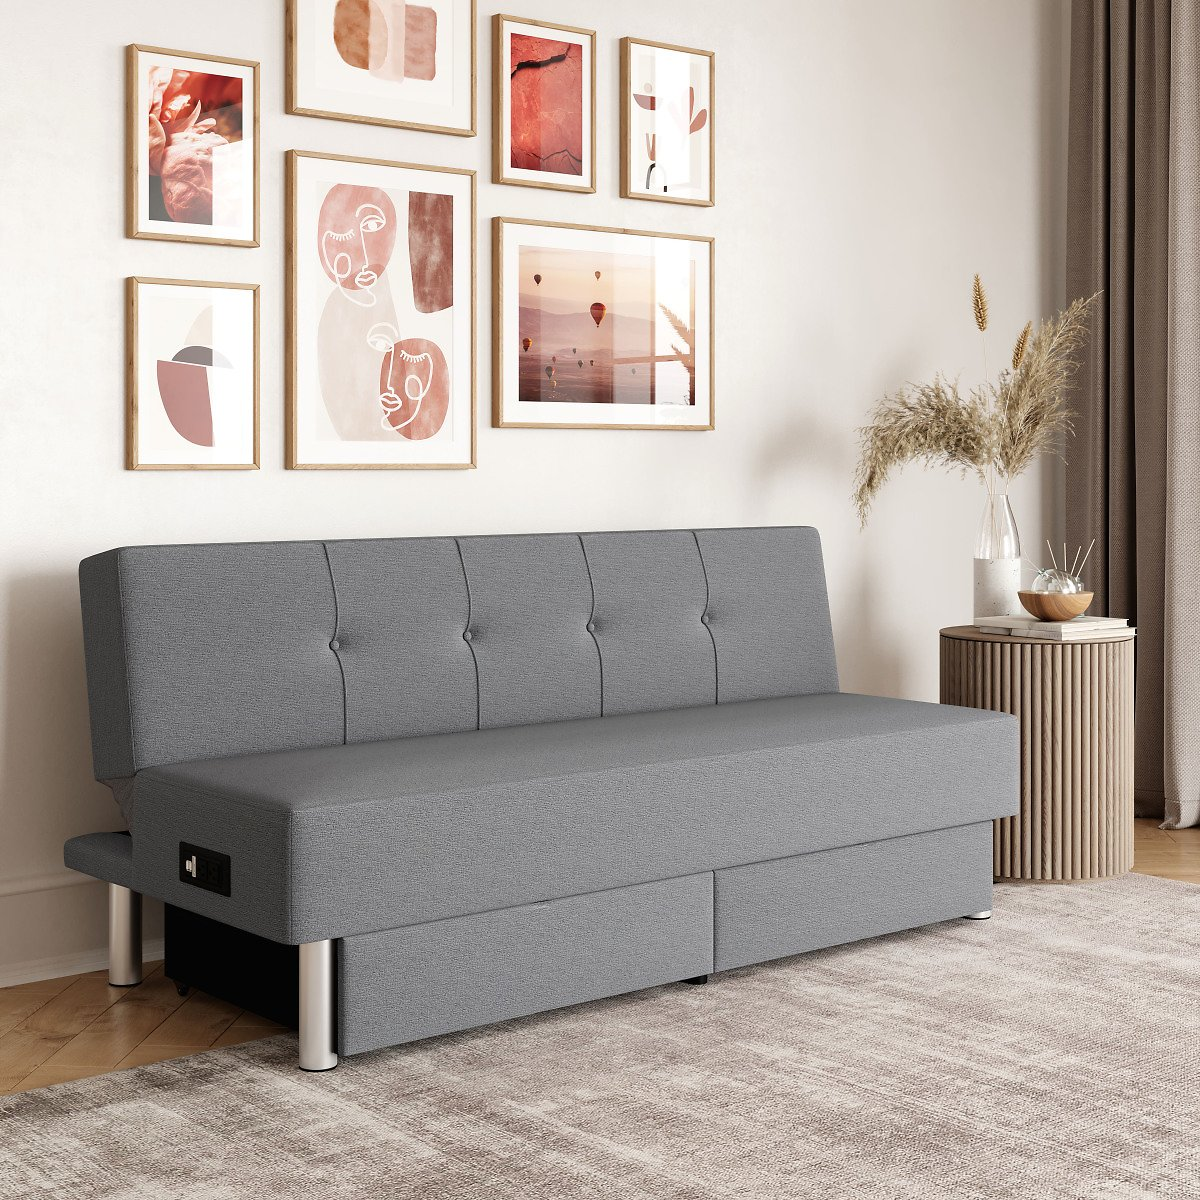 Lifestyle Solutions Windsor Convertible Futon with USB, Power & Storage, Light Grey